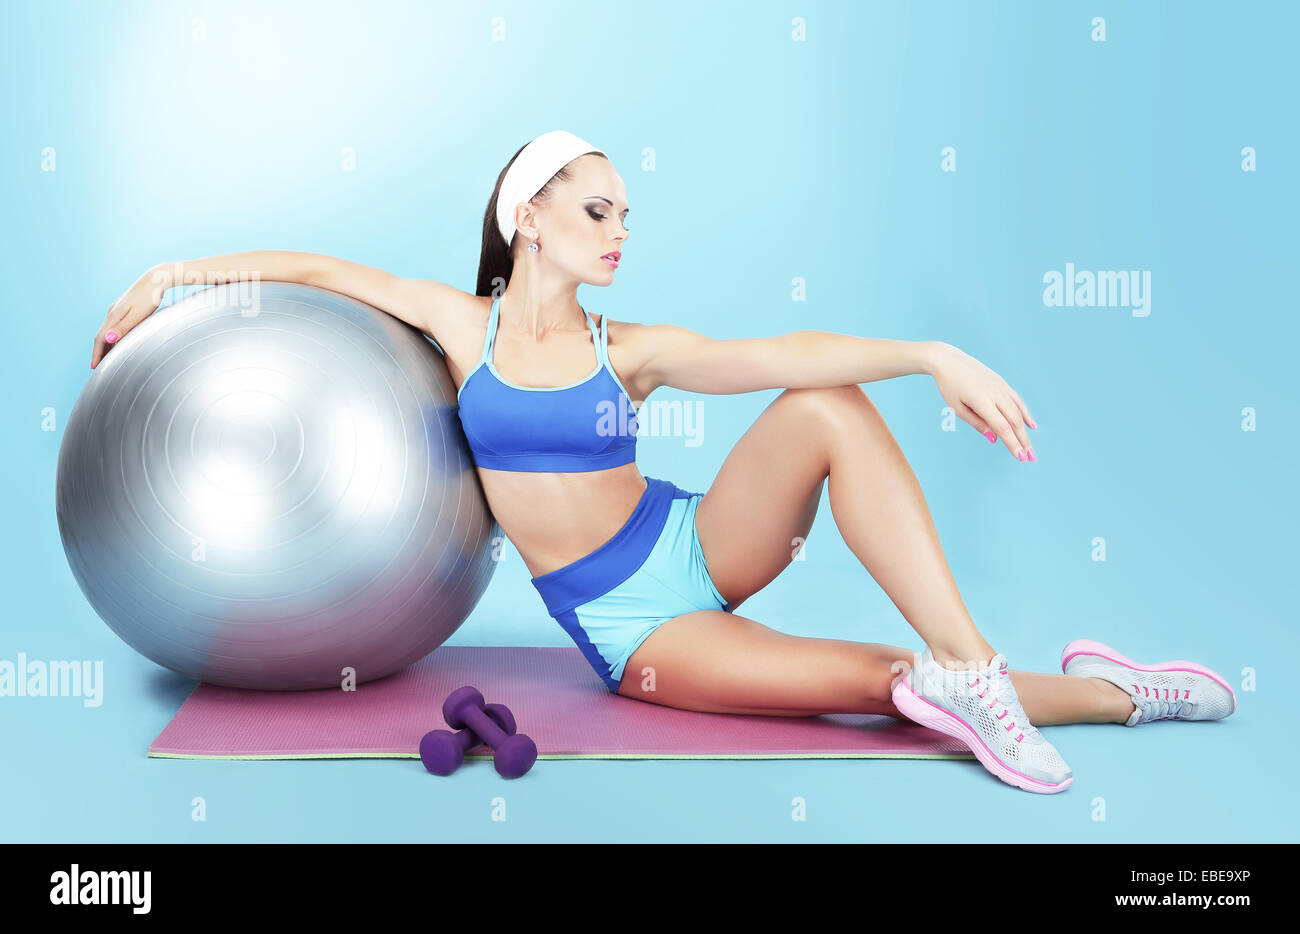 Repose. Sportswoman with Sport Equipment - a Fitness Ball and Dumbbells - Stock Image